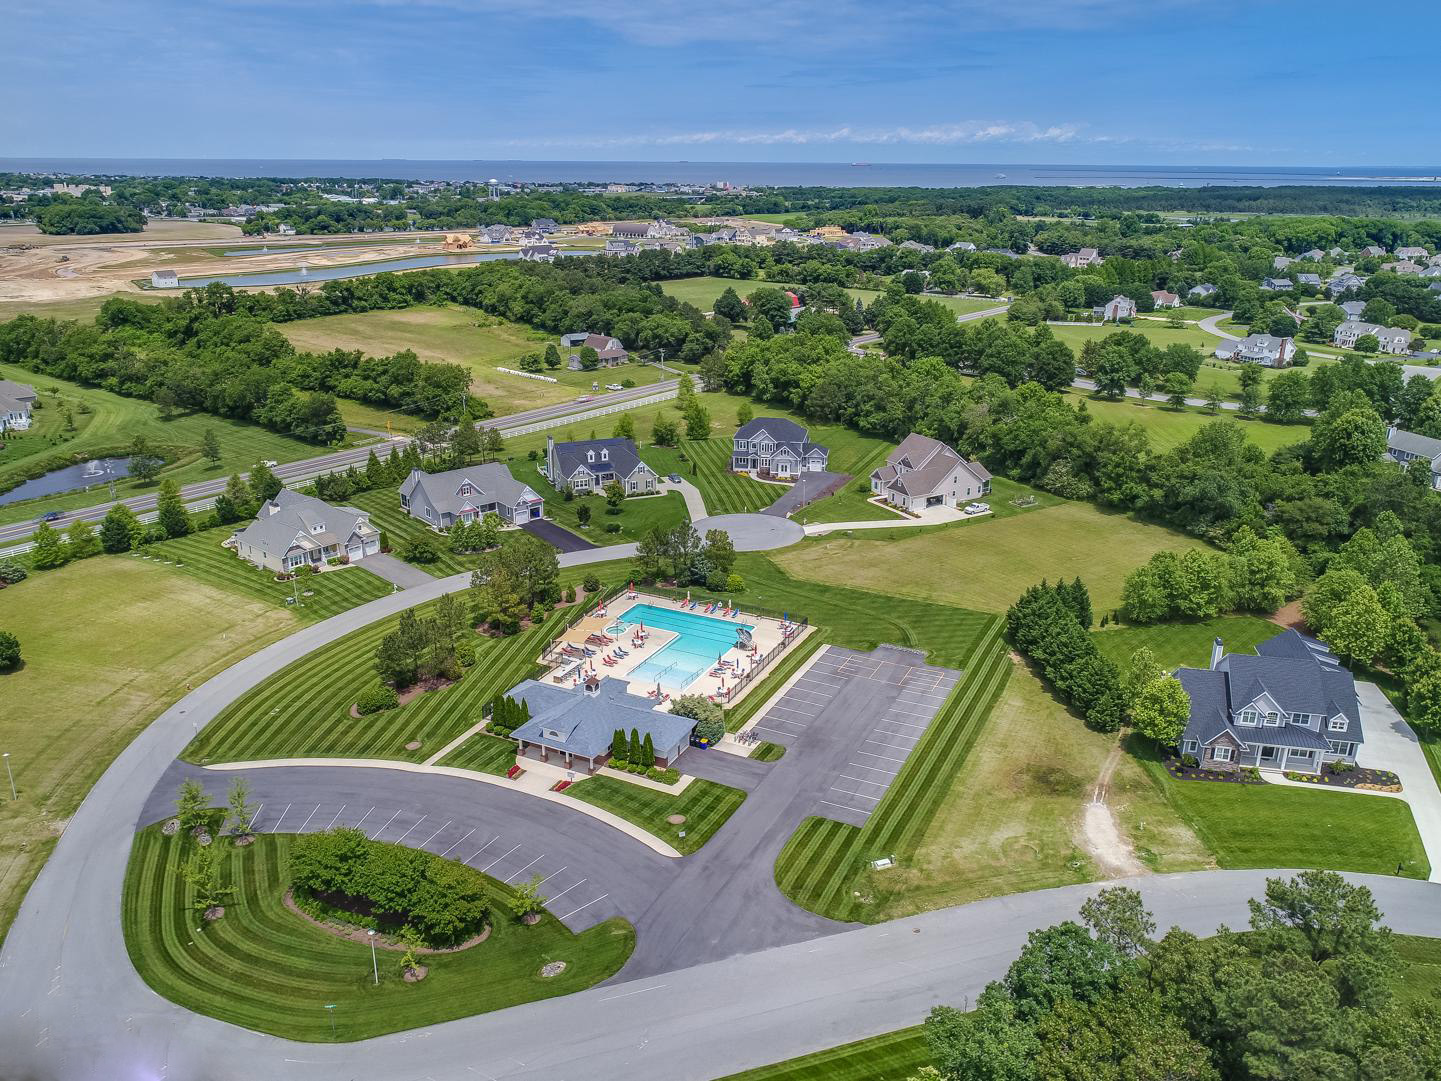 Streets aerial view  and community pool | Hawkseye, Lewes, Delaware HOA Home Owners Association